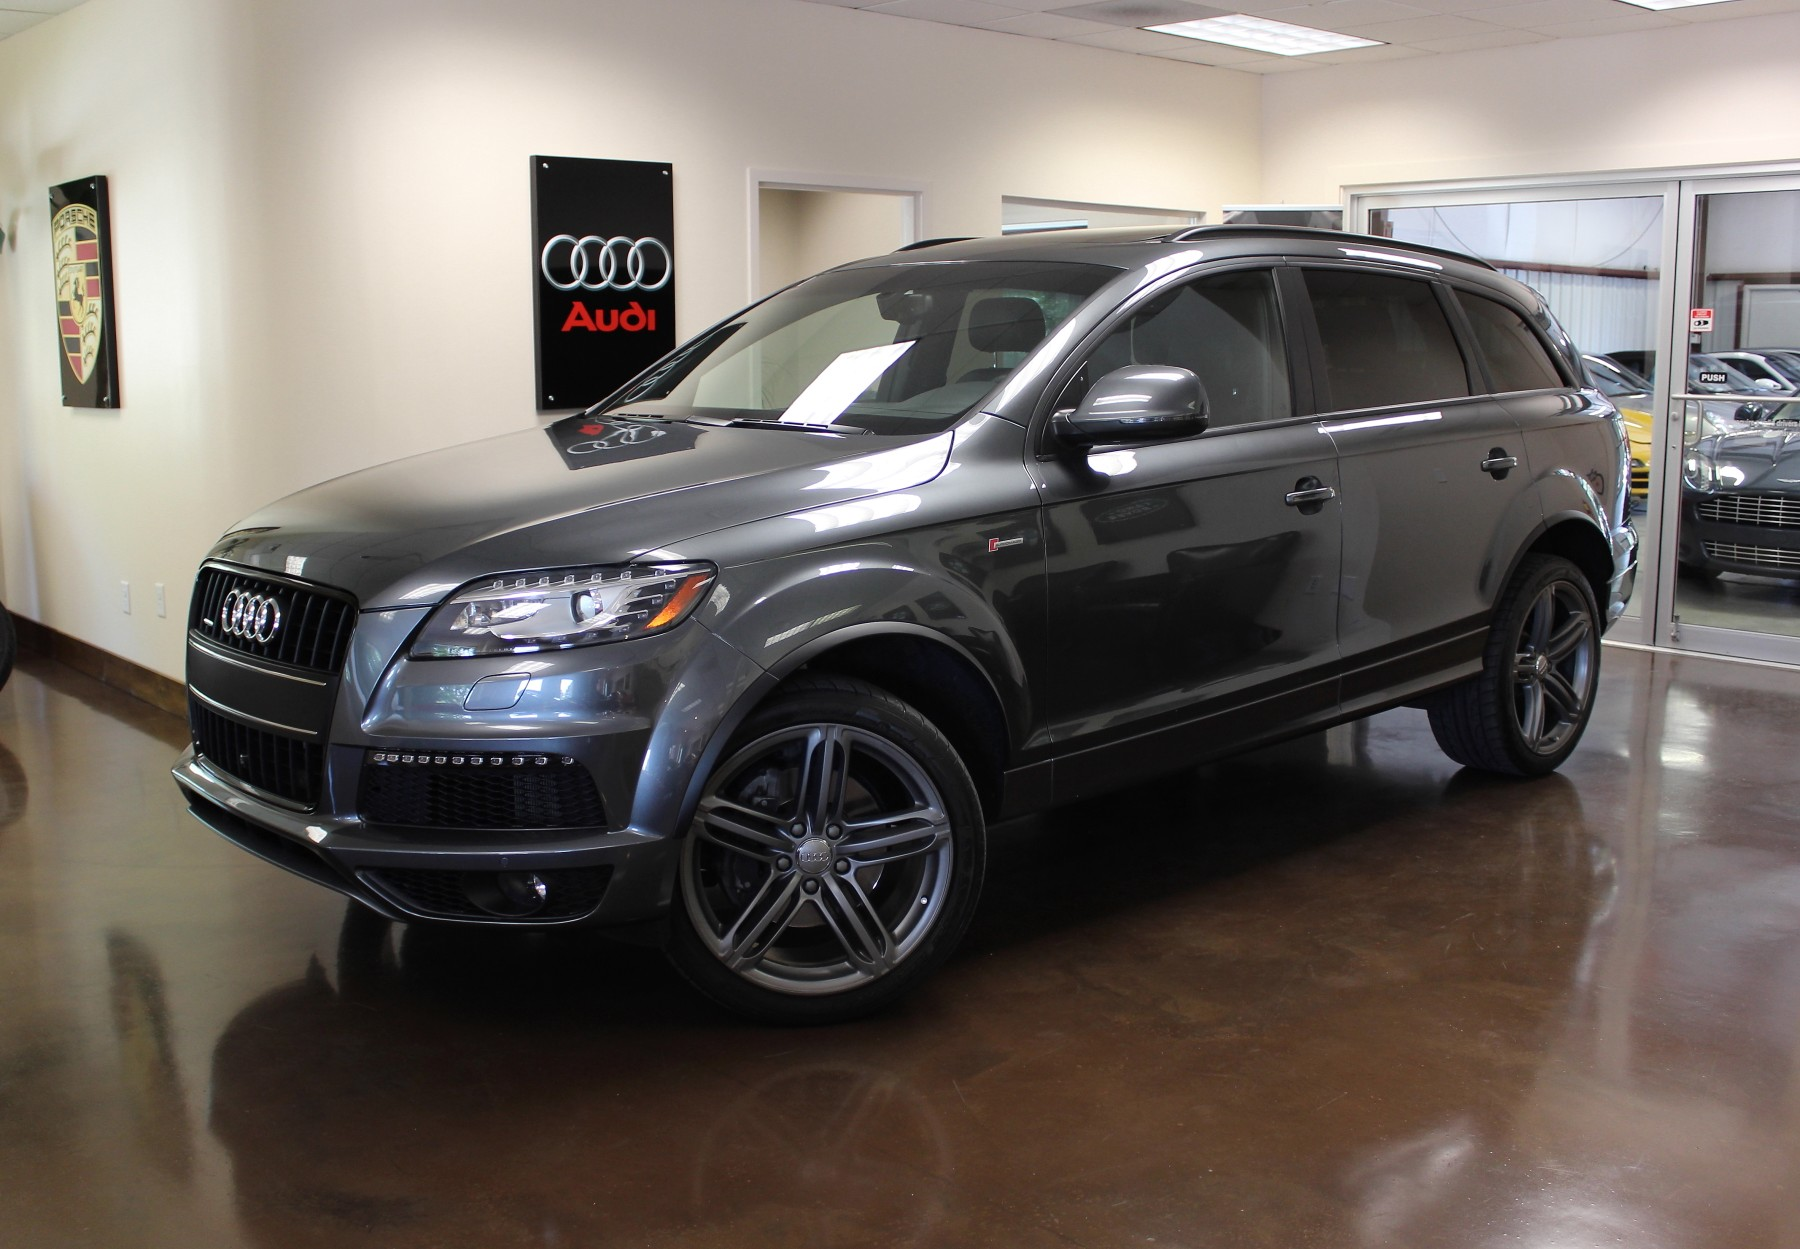 used 2013 audi q7 stock p2848 ultra luxury car from merlin auto group. Black Bedroom Furniture Sets. Home Design Ideas